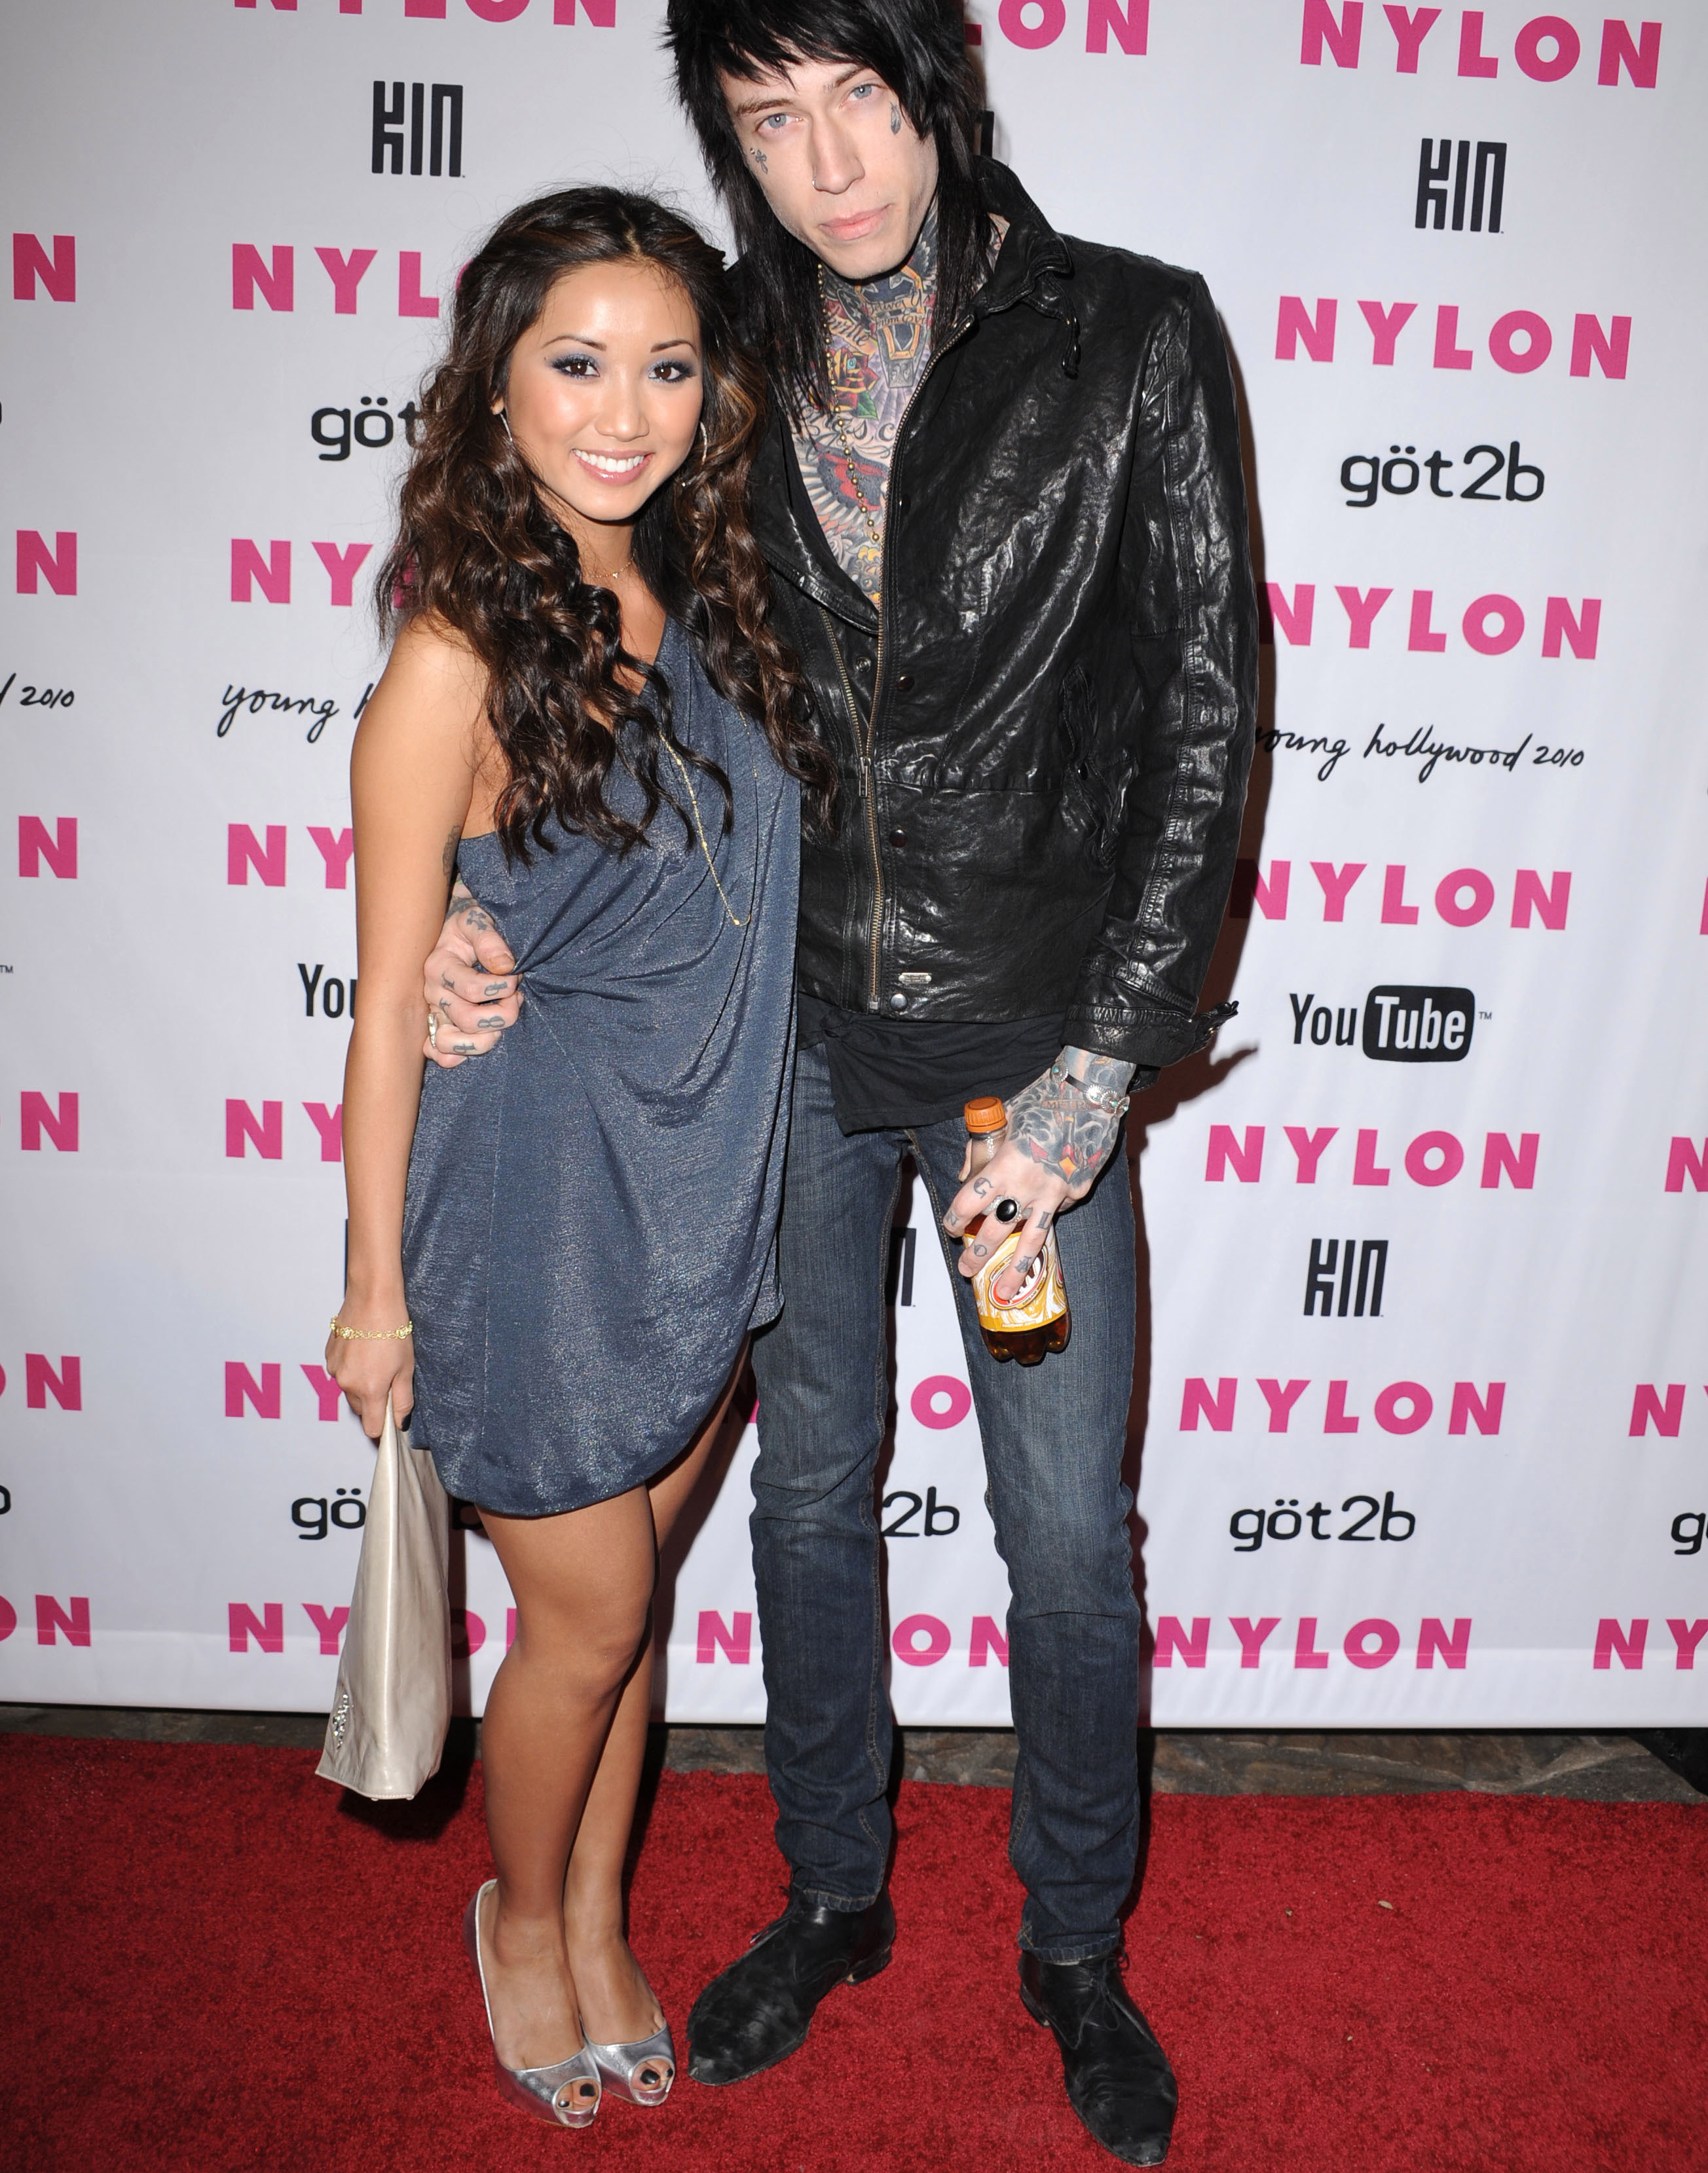 brenda song dating trace cyrus